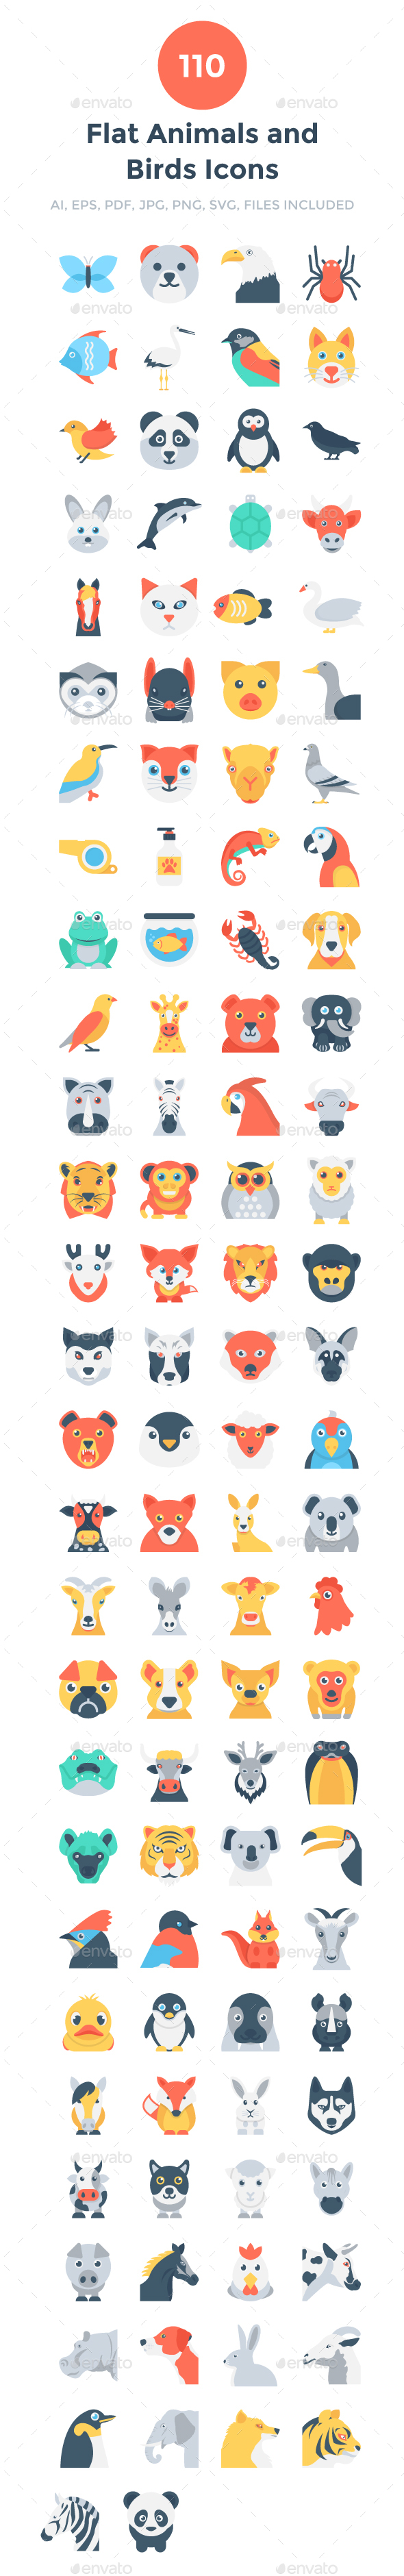 GraphicRiver 110 Flat Animals and Birds Icons 20694230